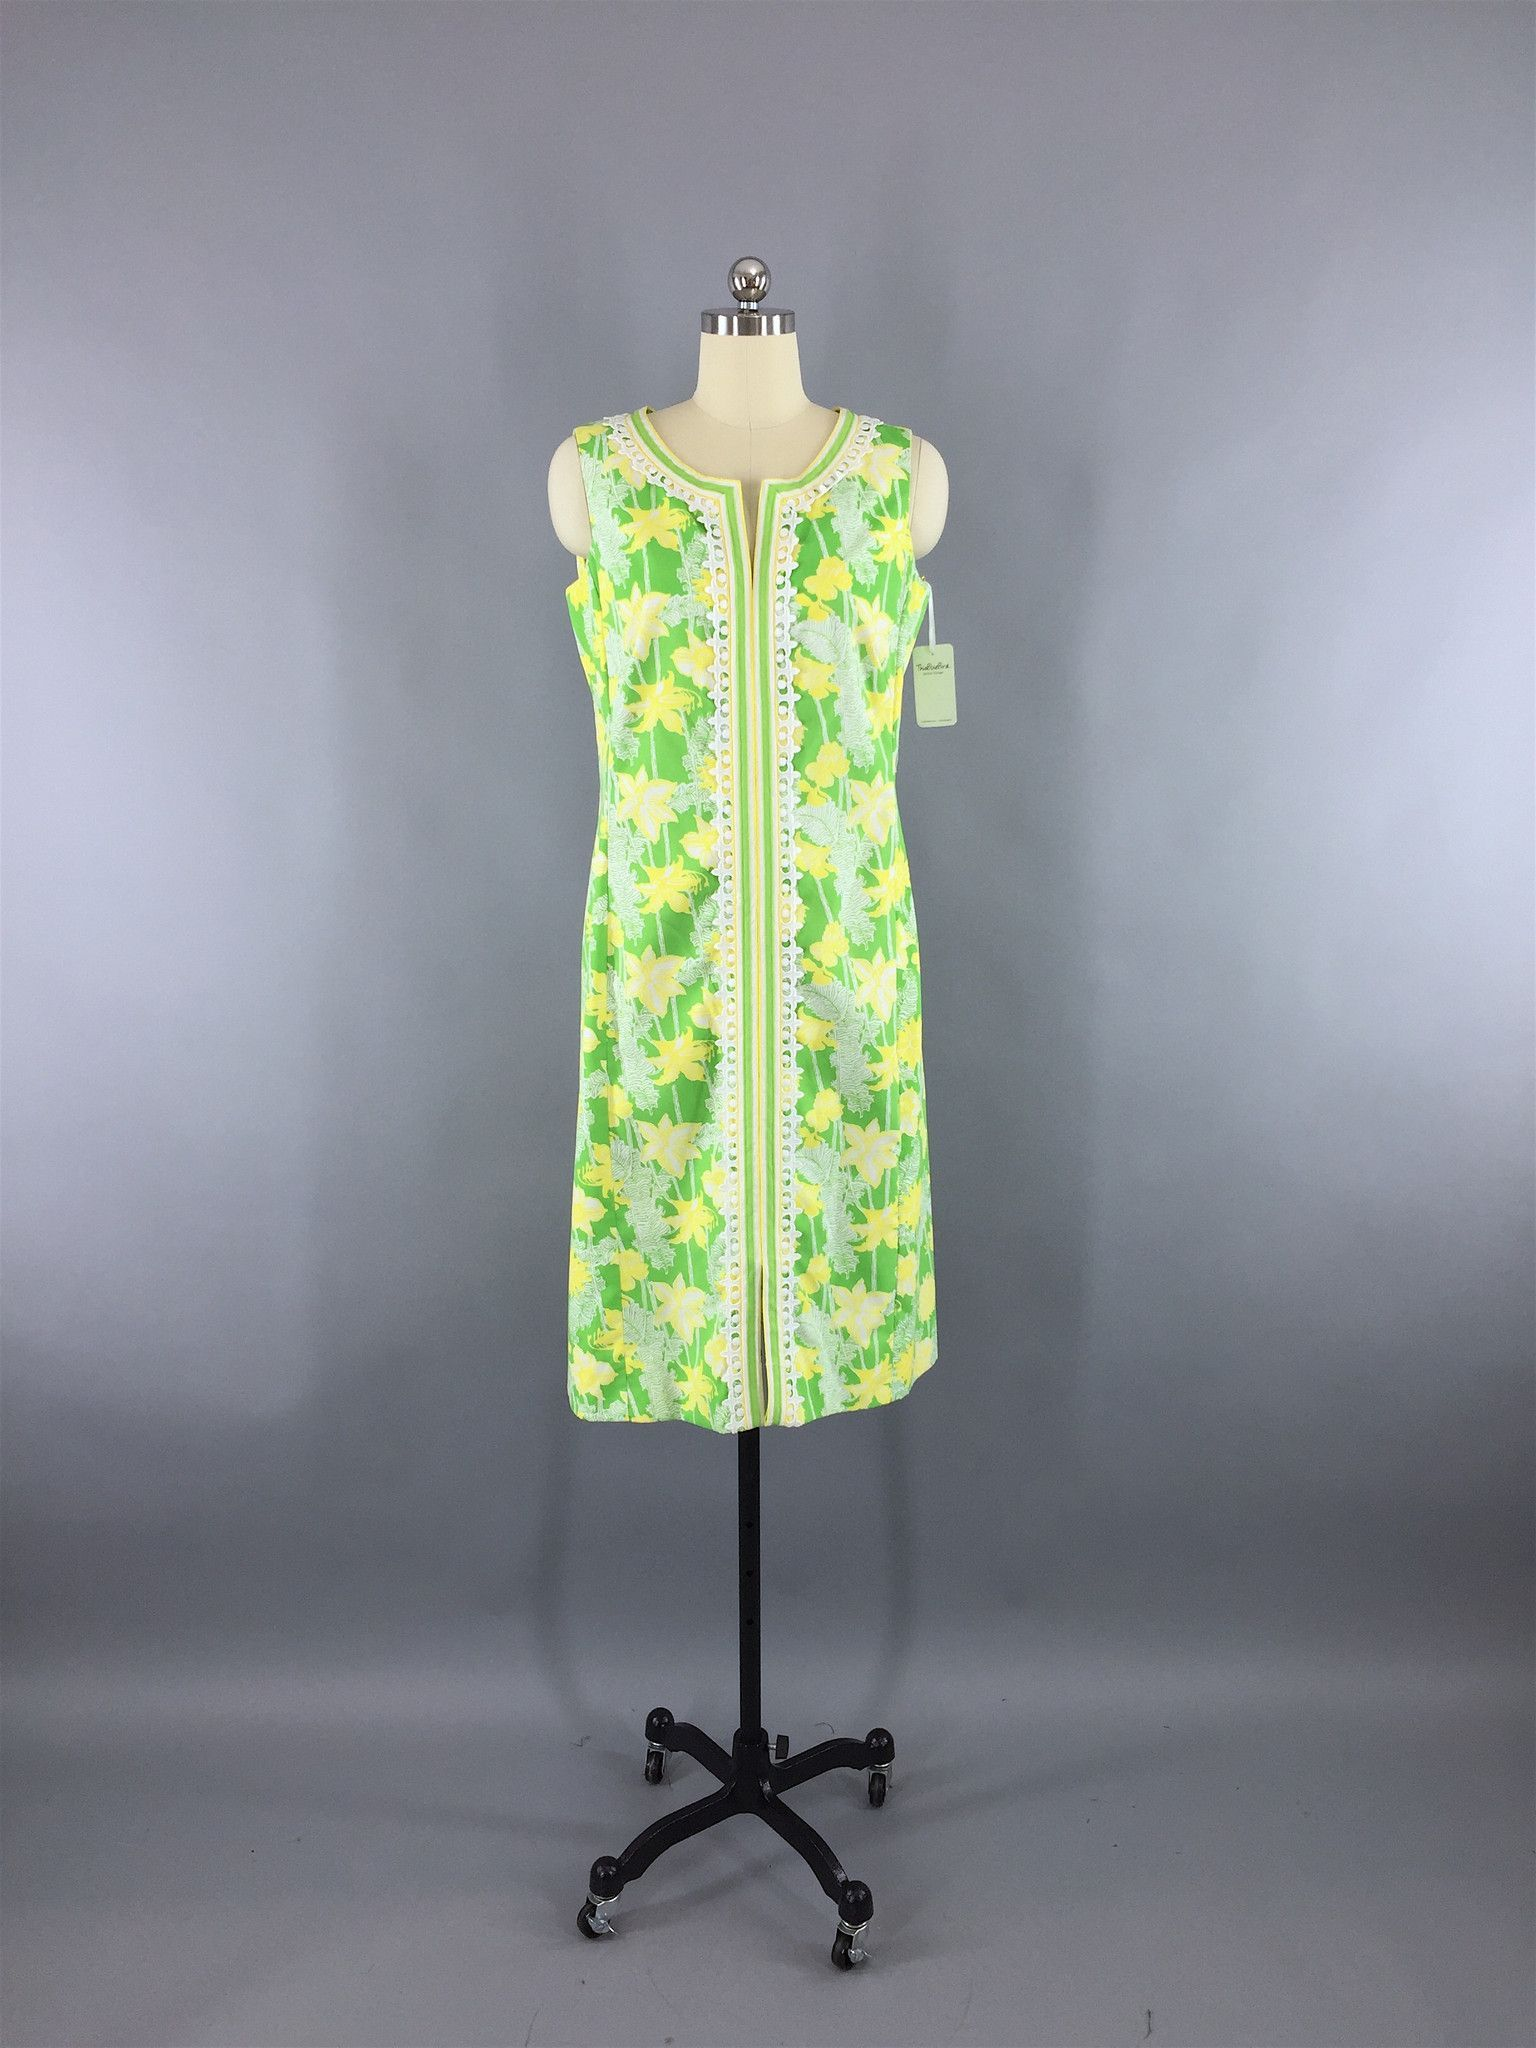 4aa1297cf69dd8 Vintage 1960s Lilly Pulitzer Dress / Green Yellow Floral Print ...